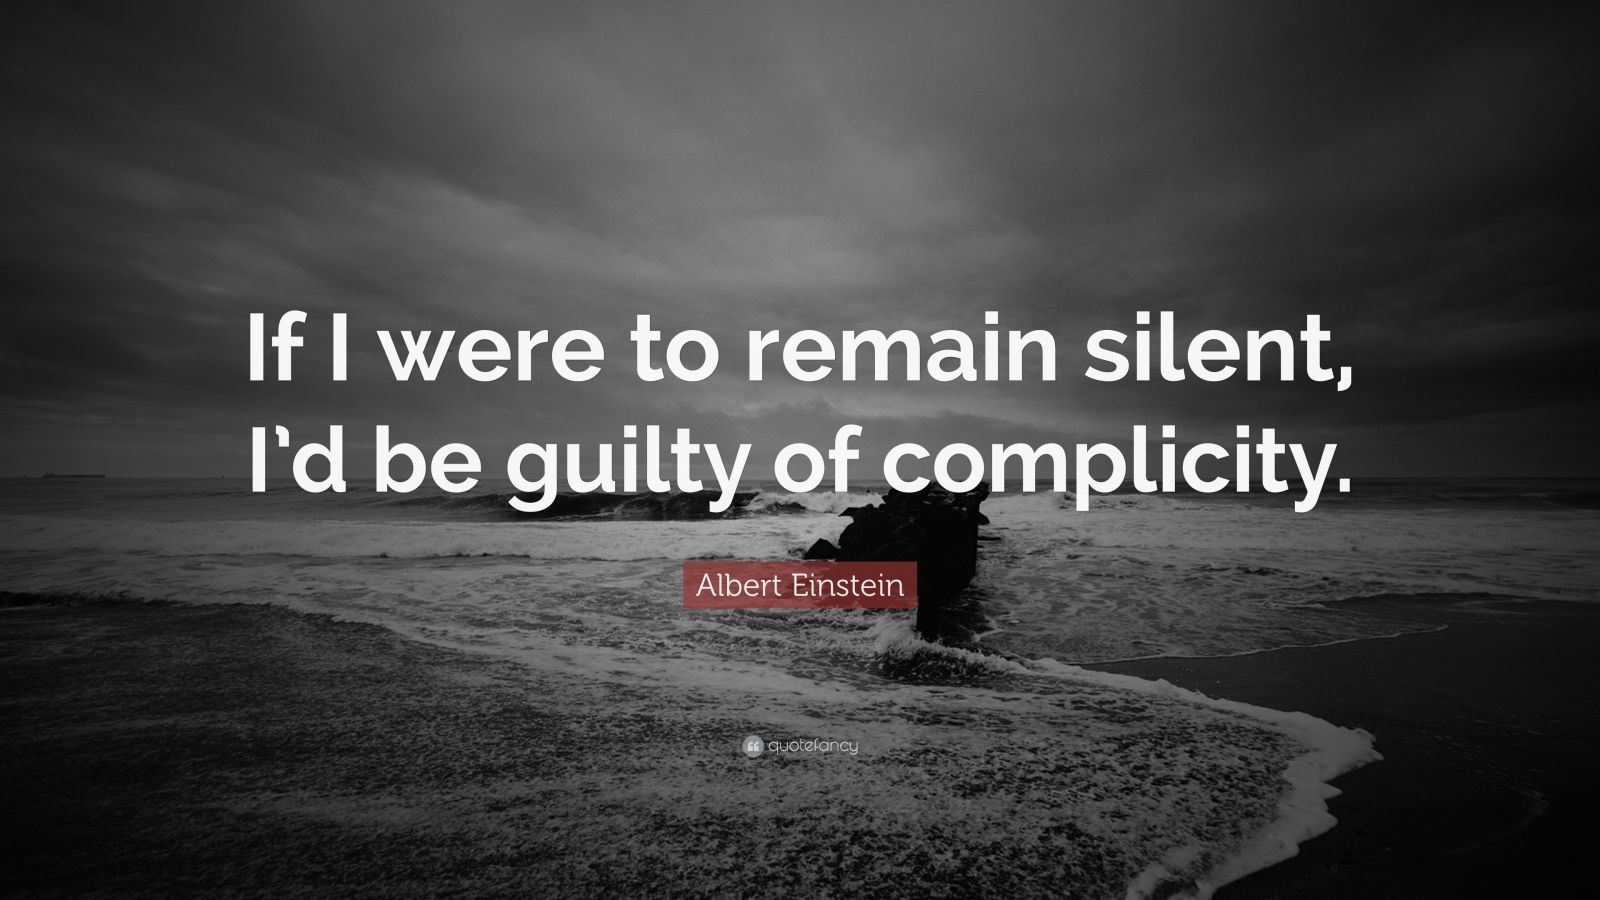 Albert Einstein Quotes Albert Einstein Quotes 100 Wallpapers  Quotefancy